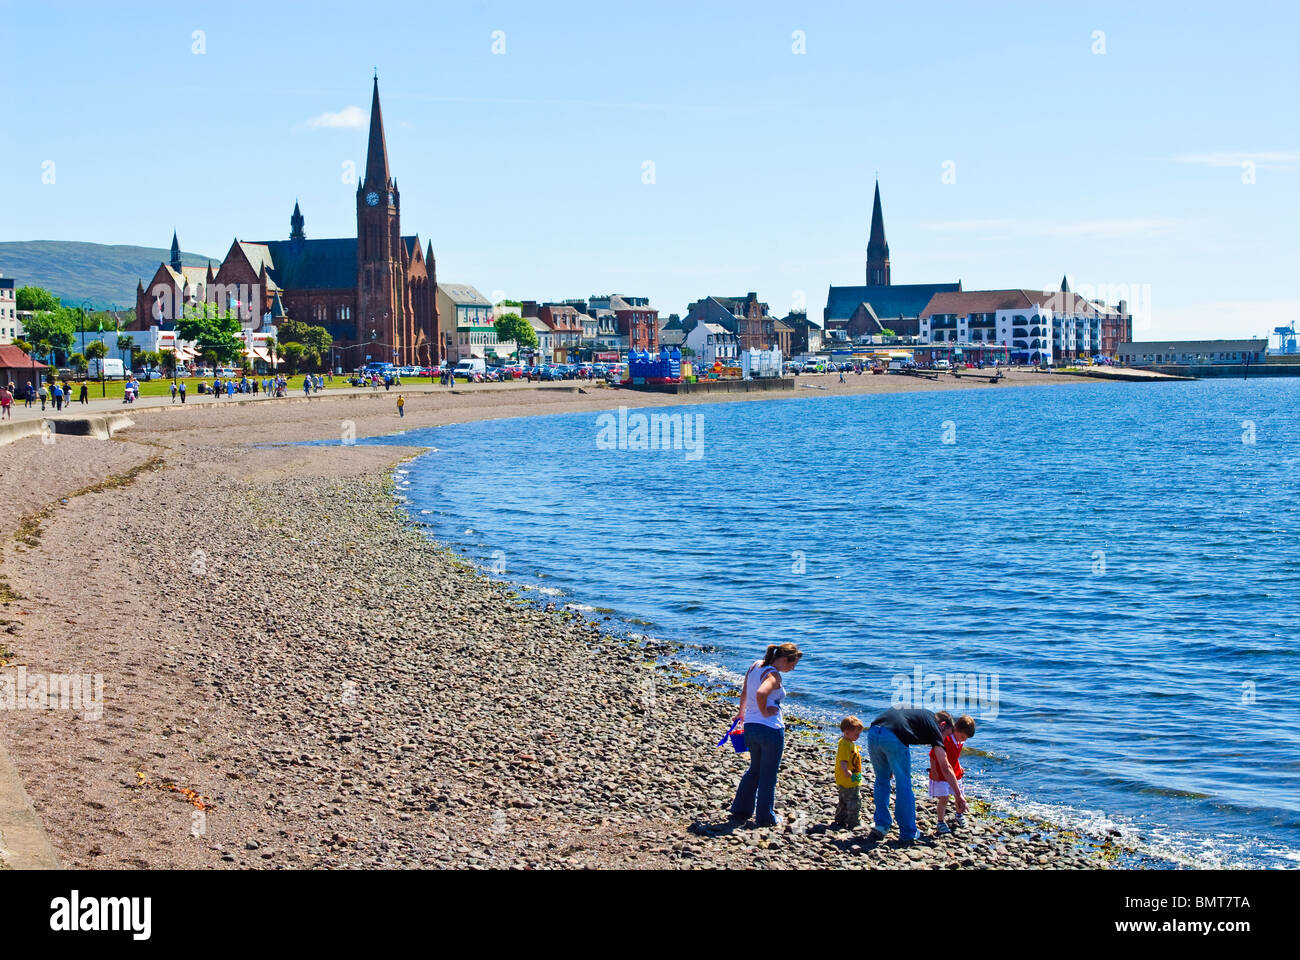 The Scottish seaside town of Largs - Stock Image